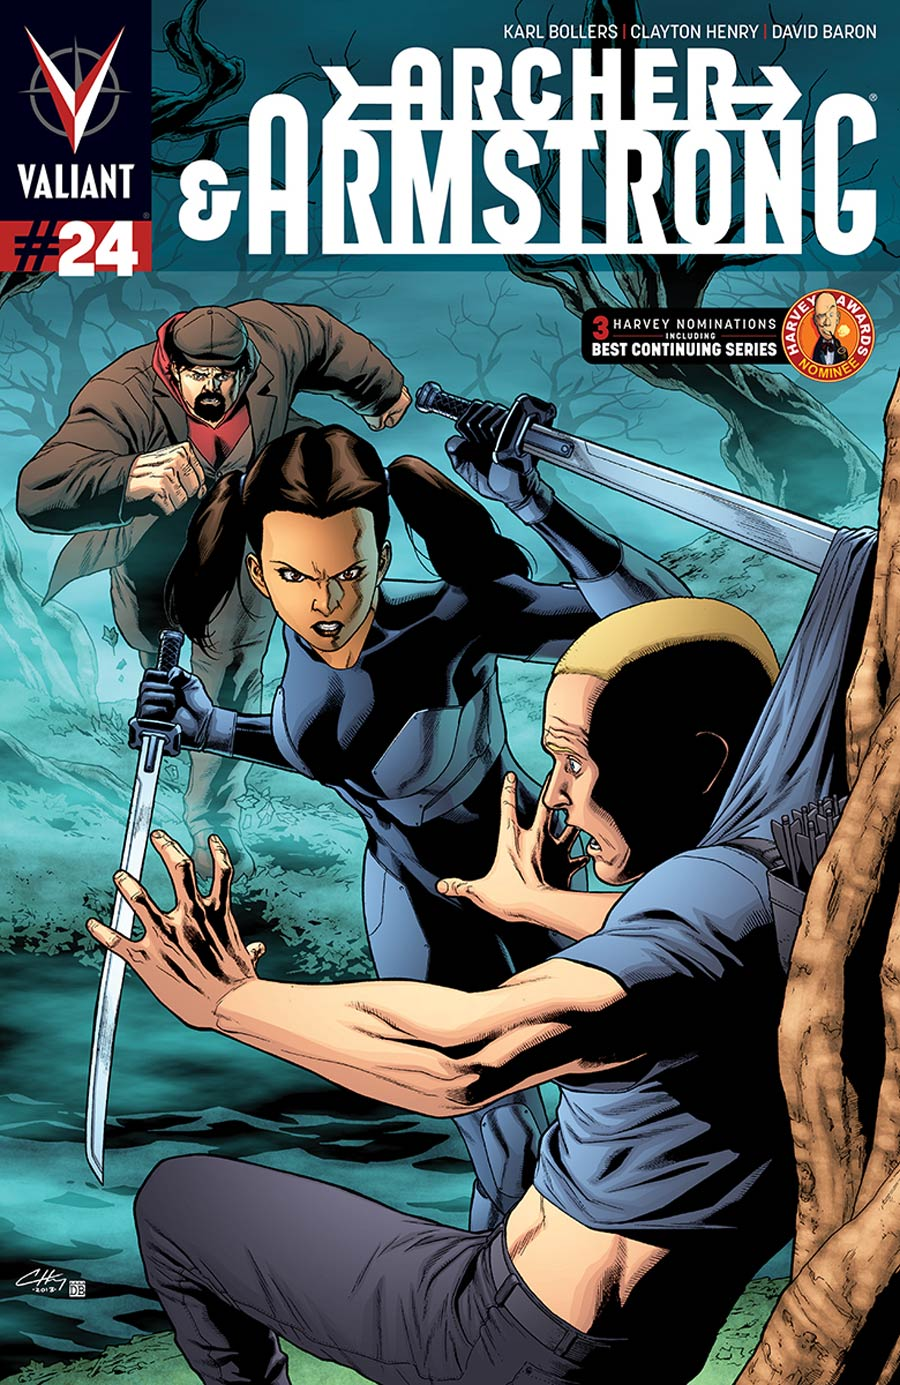 Archer & Armstrong Vol 2 #24 Cover A Regular Clayton Henry Cover